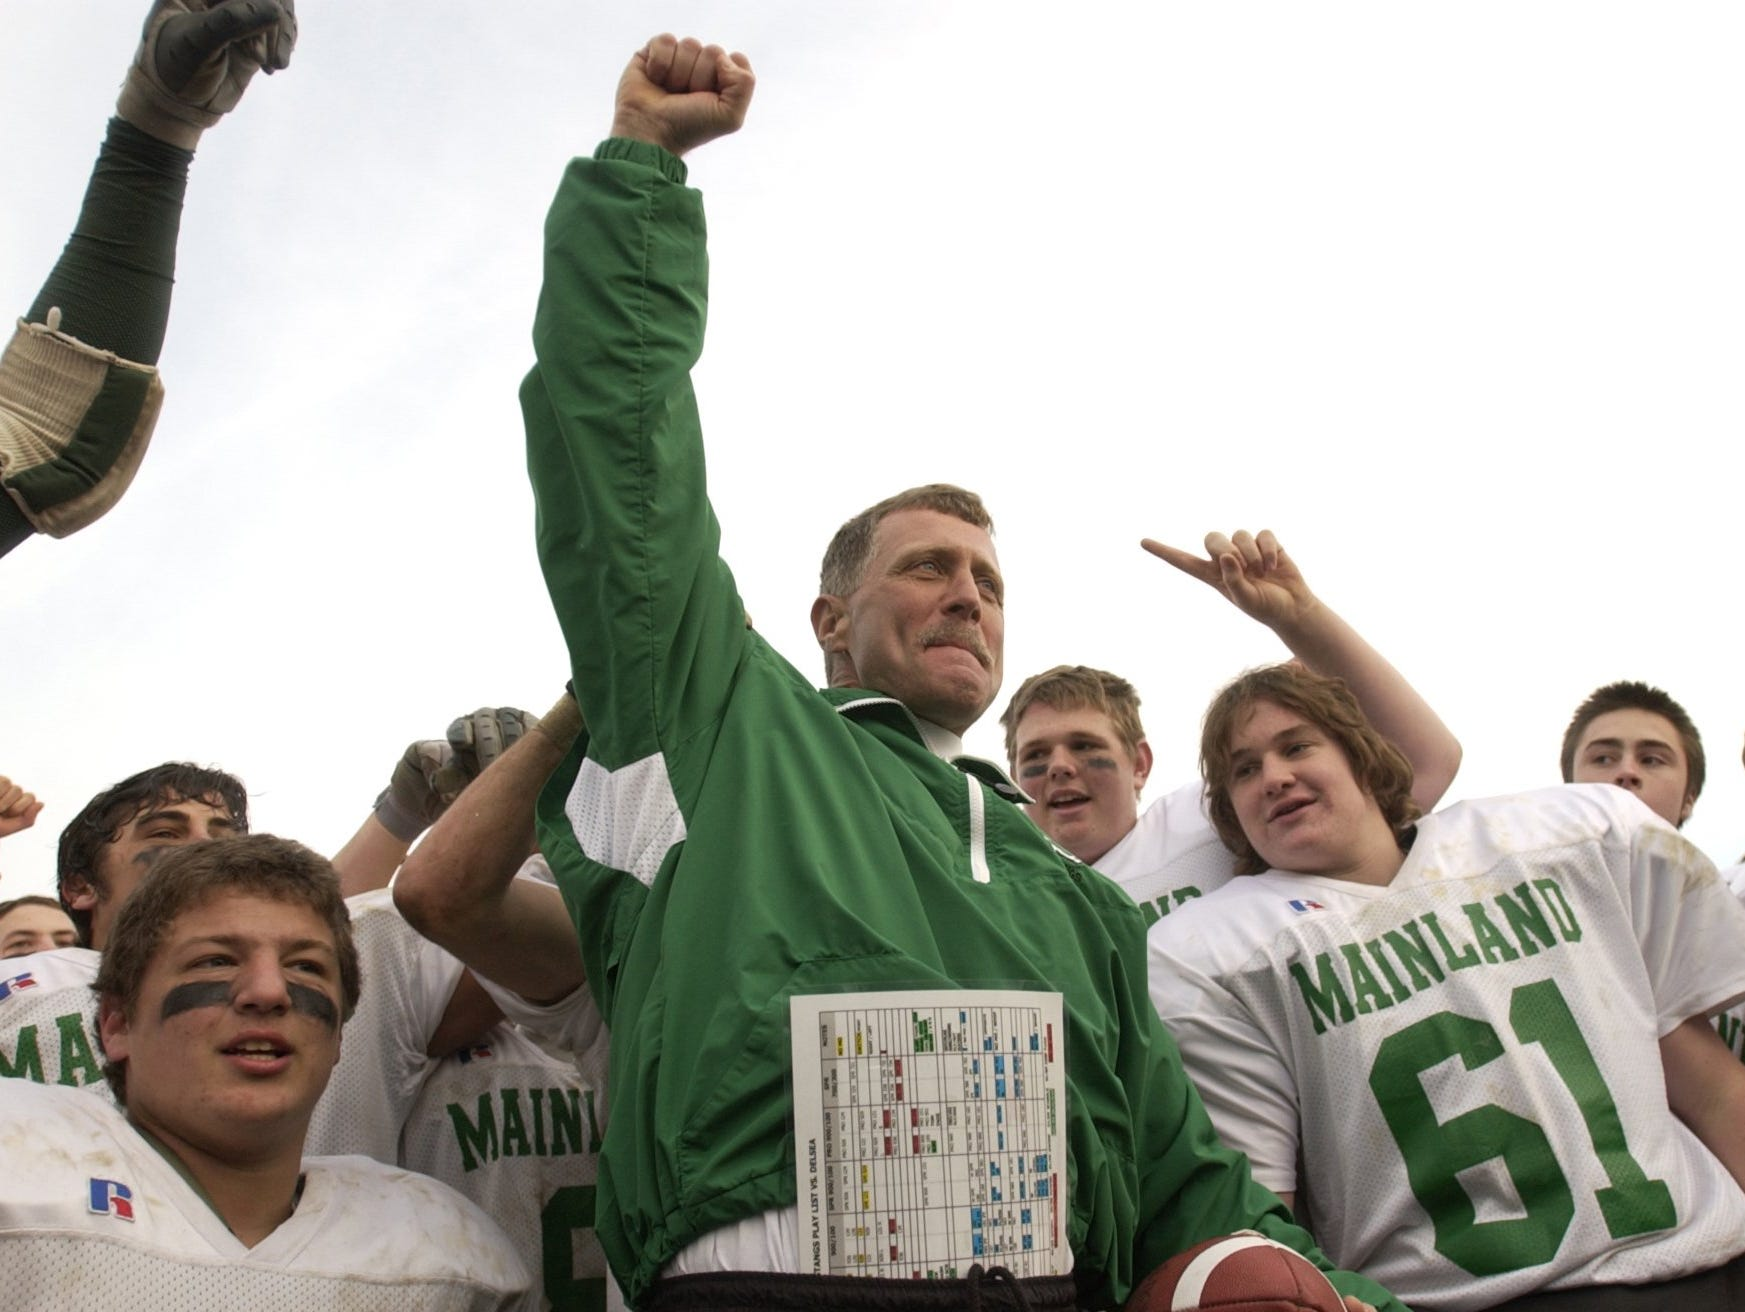 Mainland coach Bob Coffey celebrates with his players after the Mustangs won the 2002 South Jersey Group 3 title.